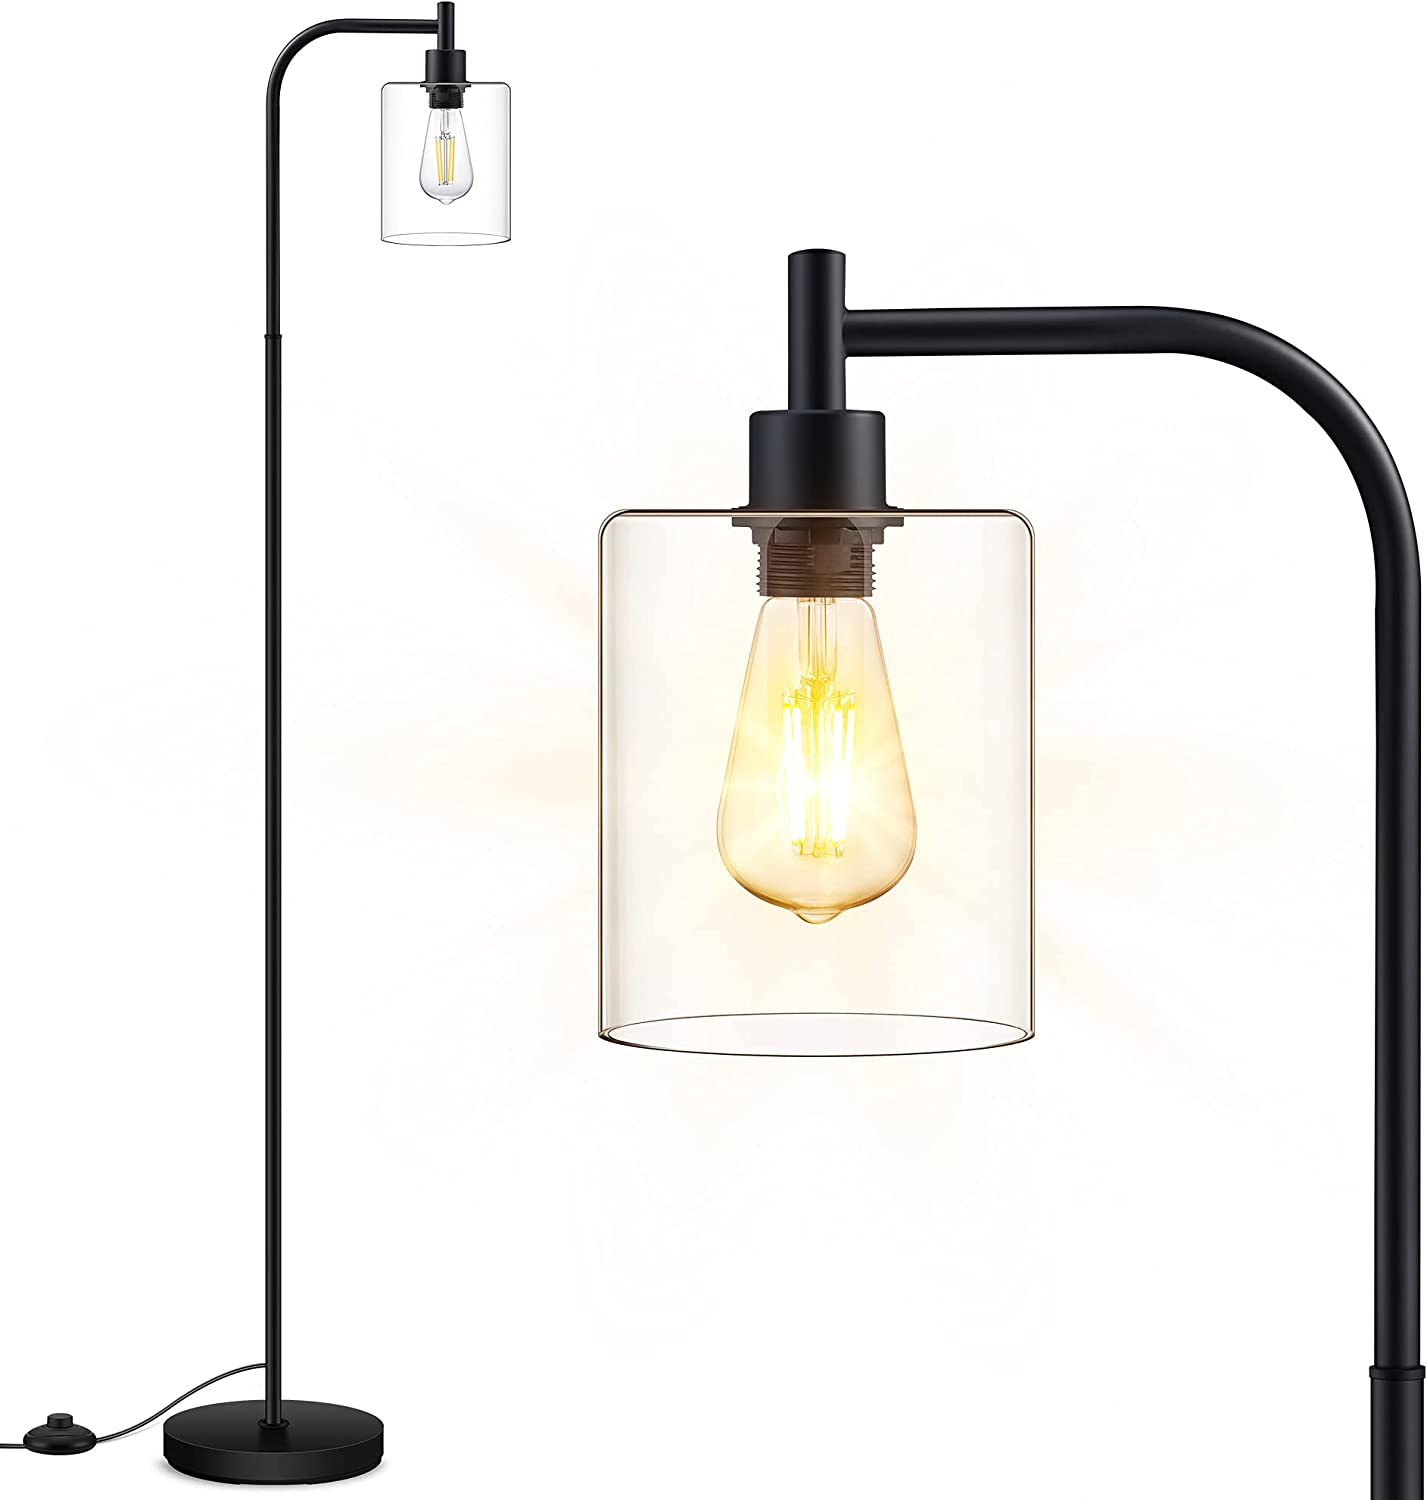 Floor Max 52% OFF Lamp Standing with Glass Bulb Popular standard Incl 6W Lampshade LED